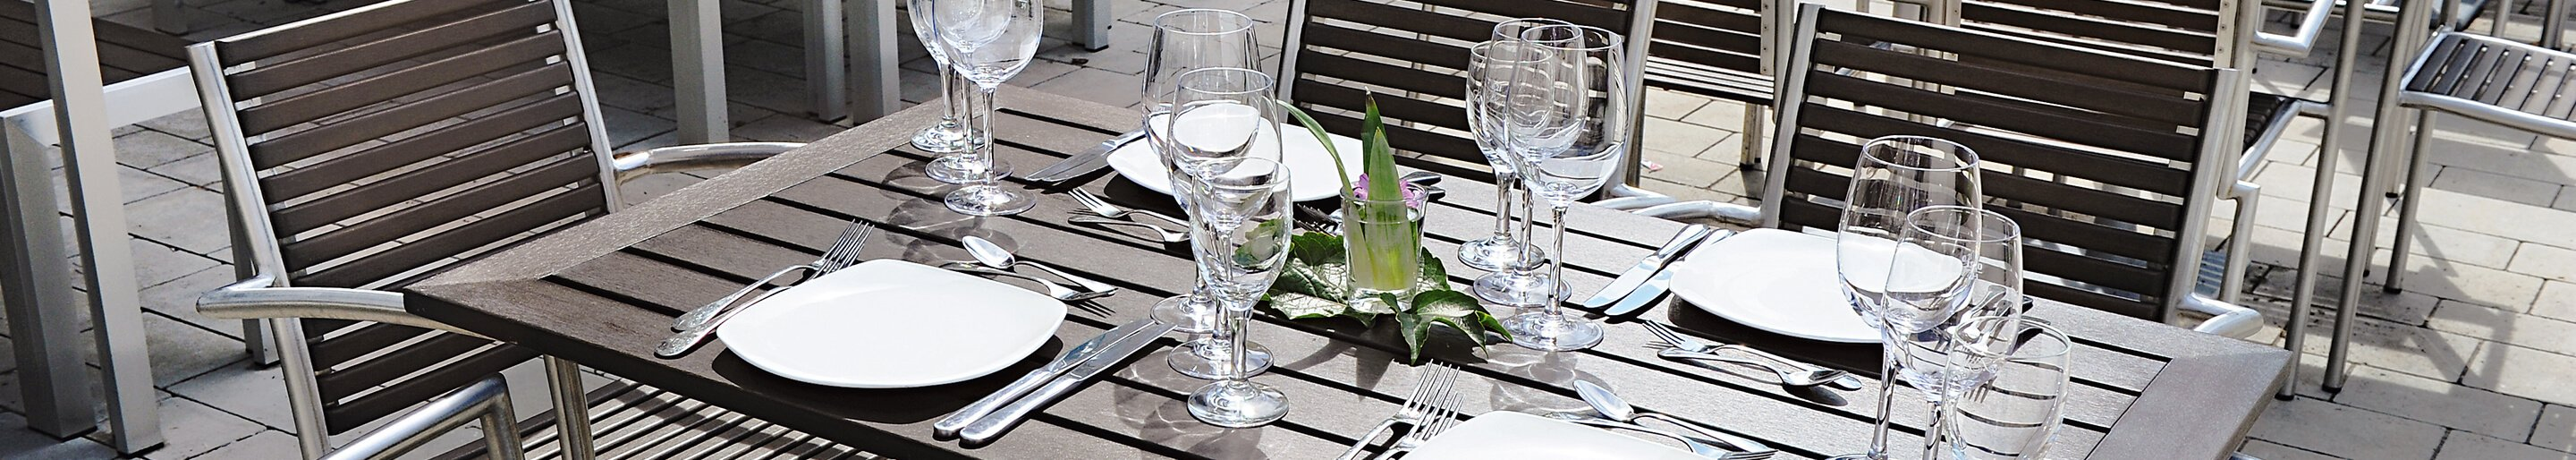 Weatherproof table tops for your restaurant, hotel or beer garden